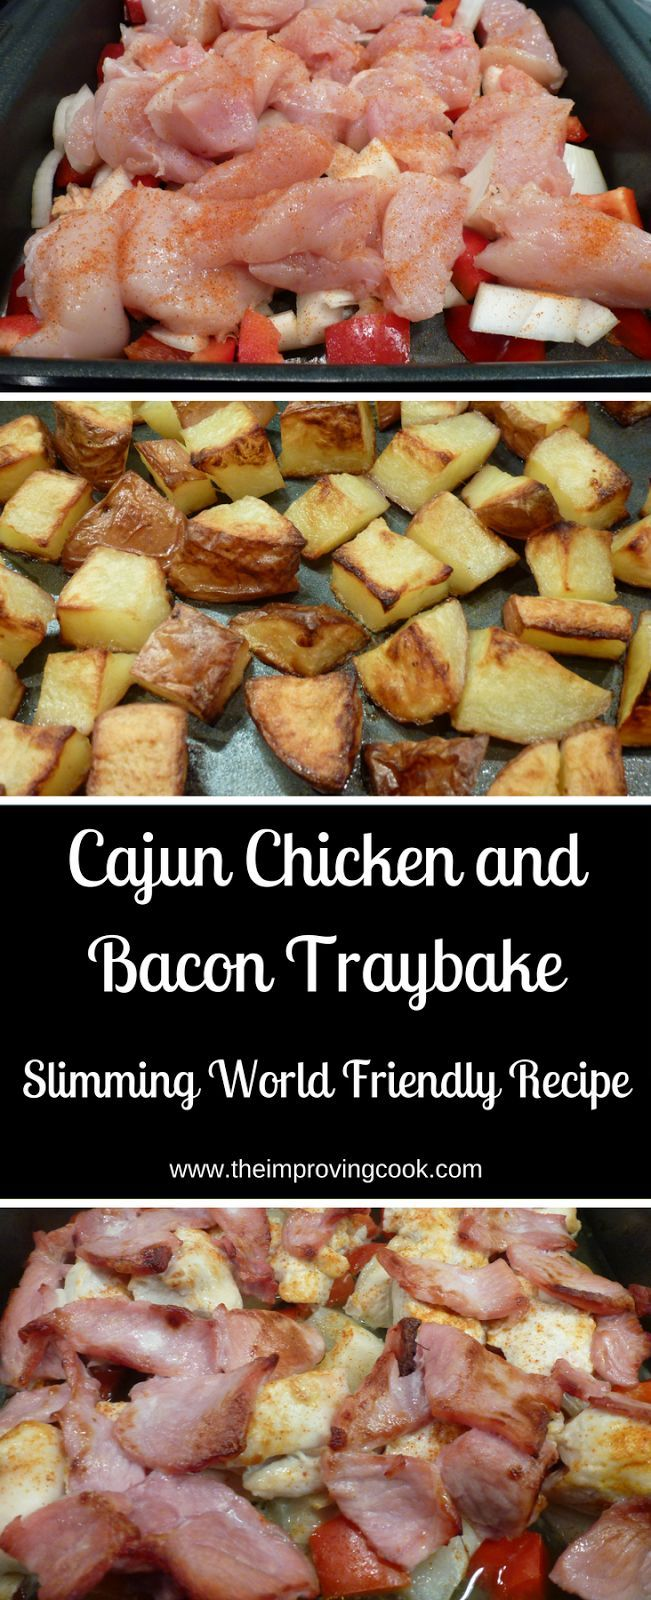 Cajun Chicken and Bacon Traybake- great for a quick weekenight dinner and Slimming World Friendly too!